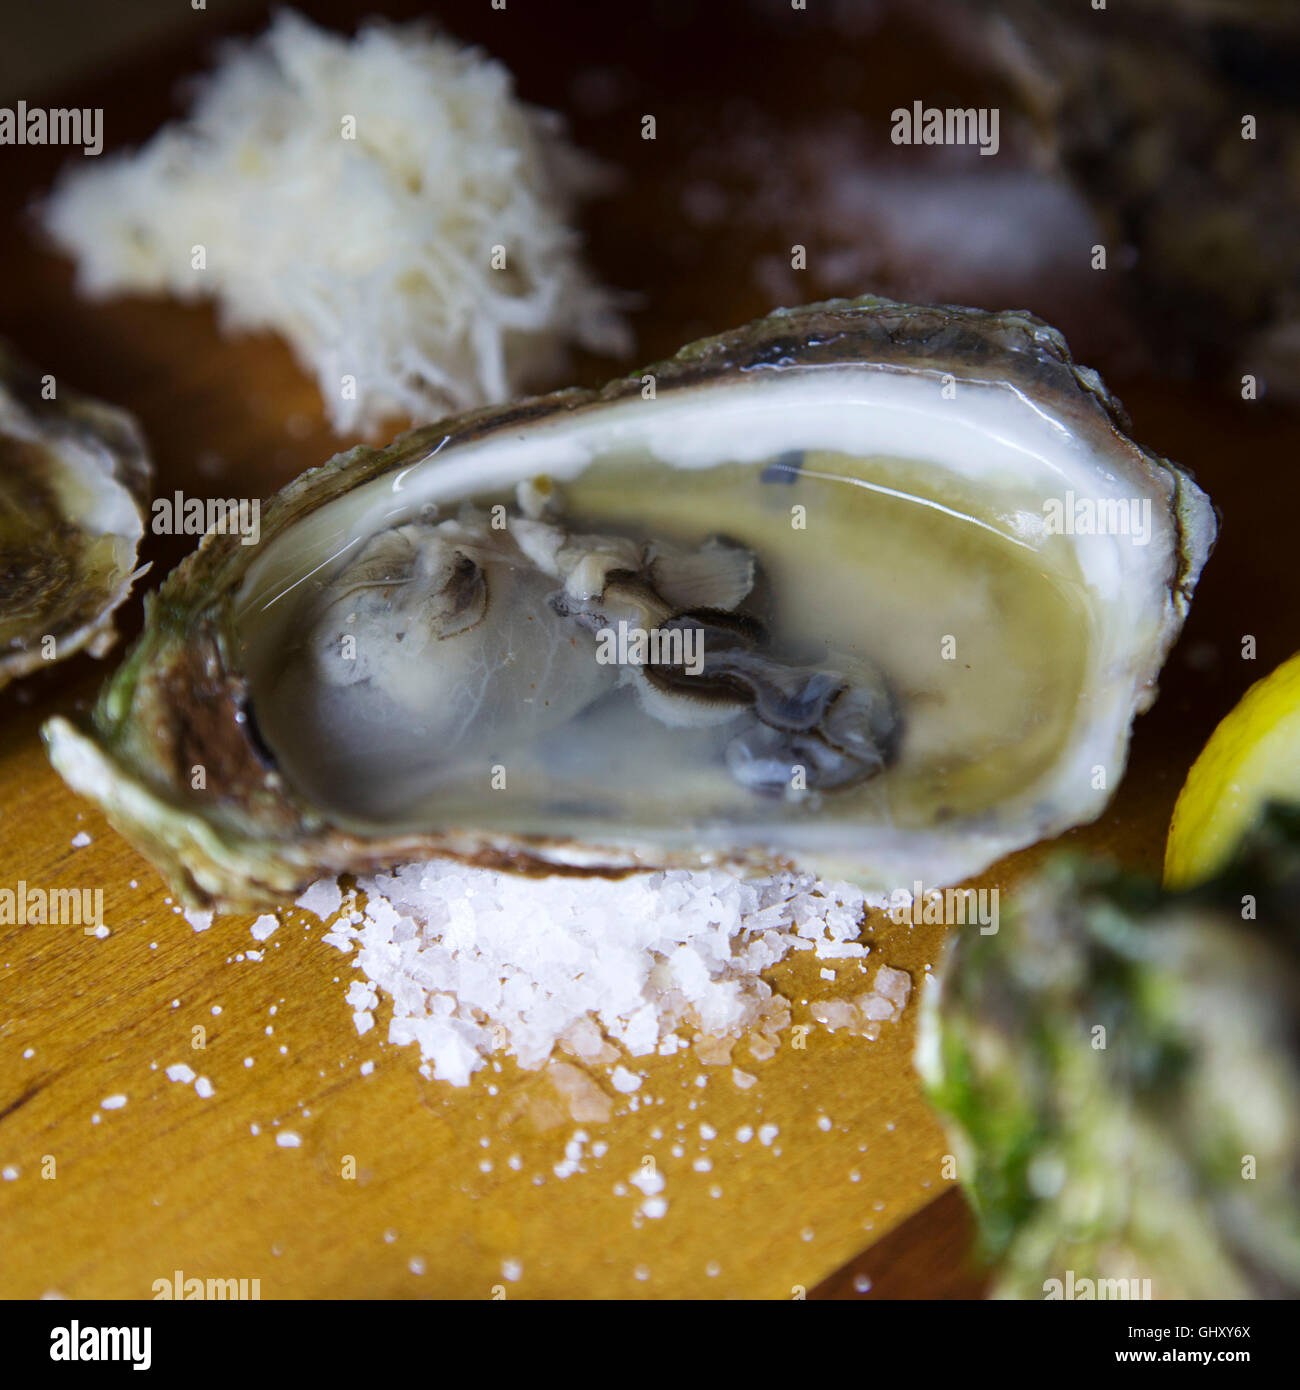 Price Edward Island oysters served at St John's in Newfoundland and Labrador, Canada. Stock Photo